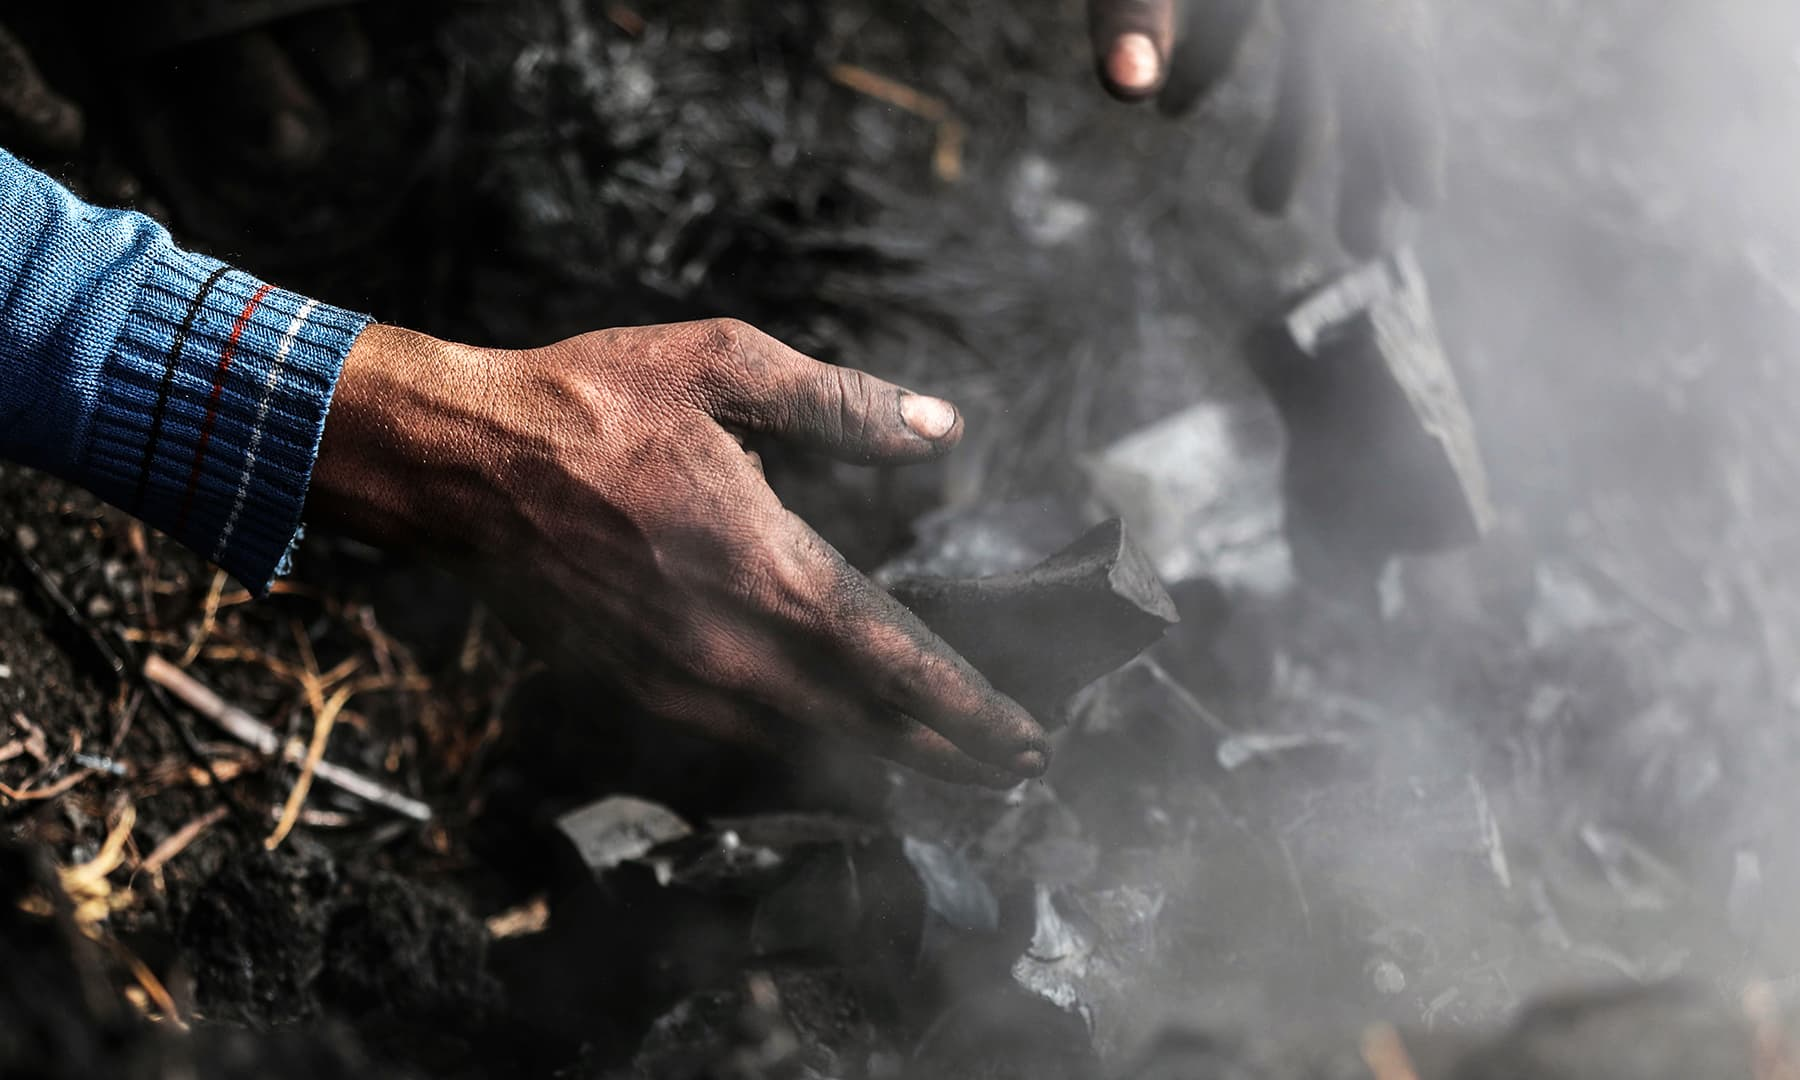 An Egyptian labourer works at a charcoal factory in Egypt's Sharkia governorate. — AFP